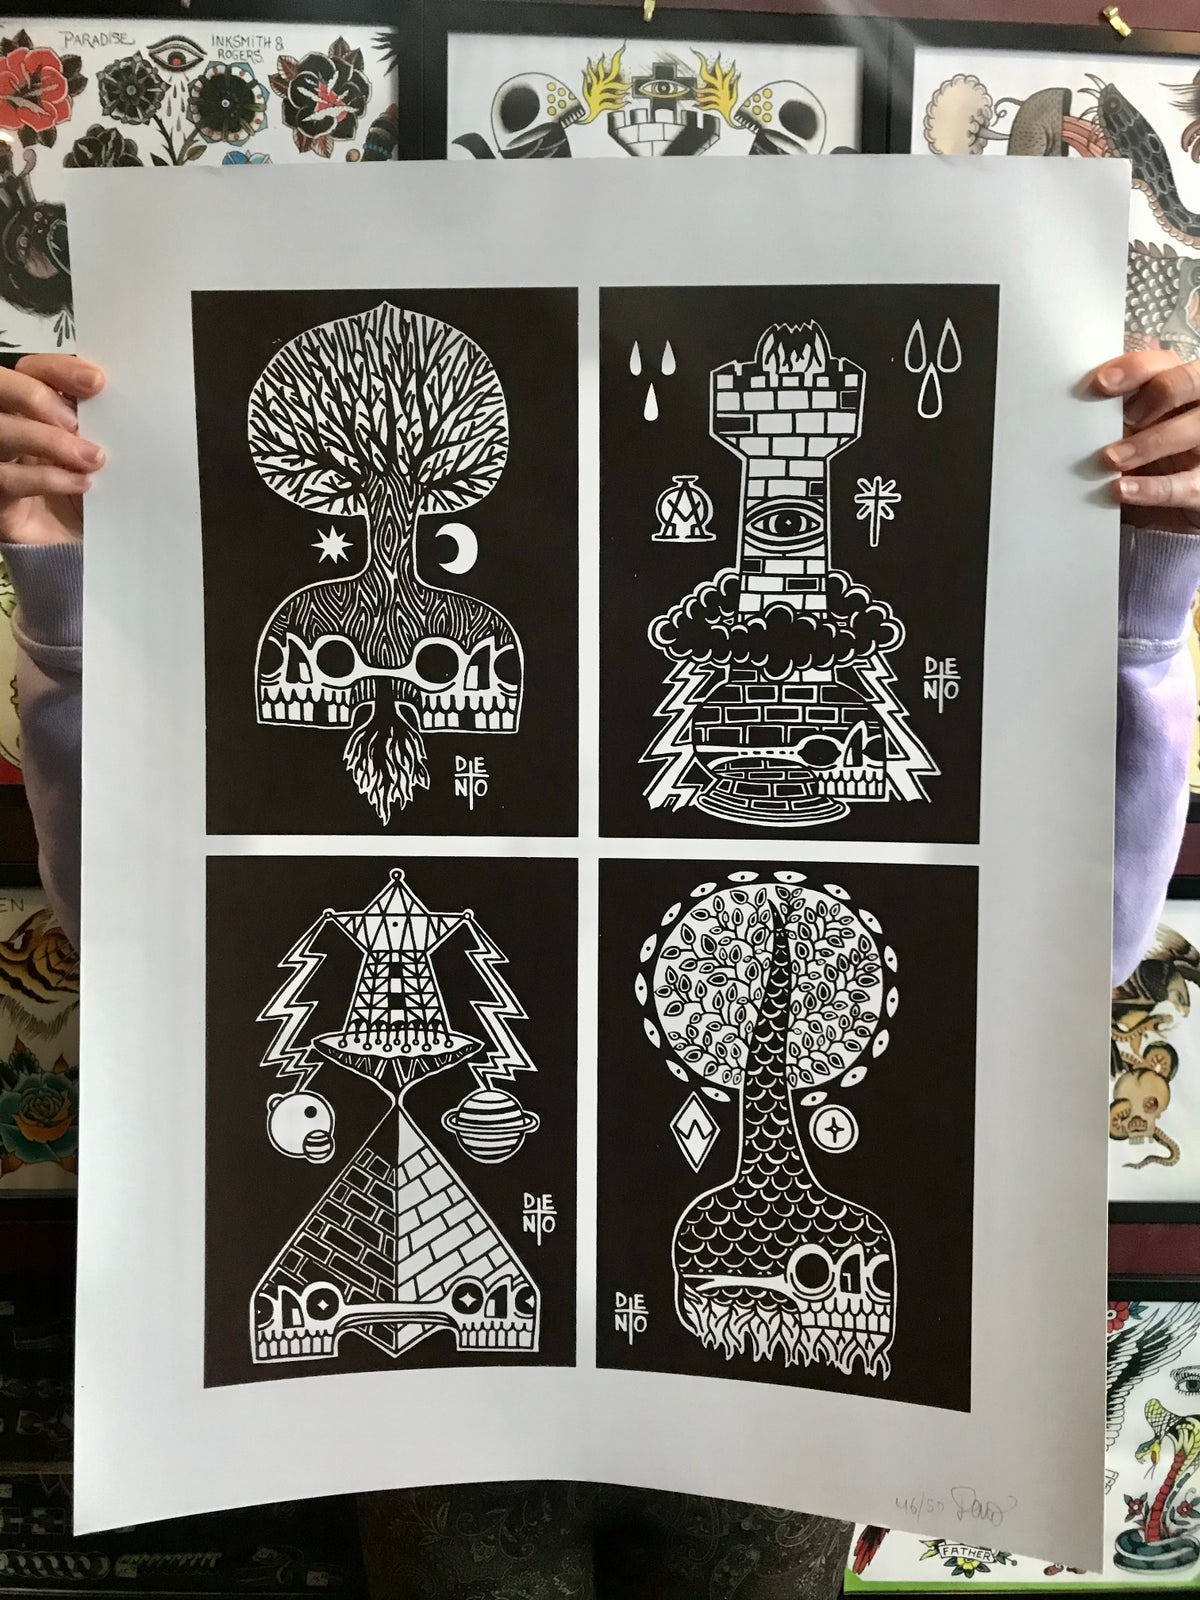 Image of Deno limited prints